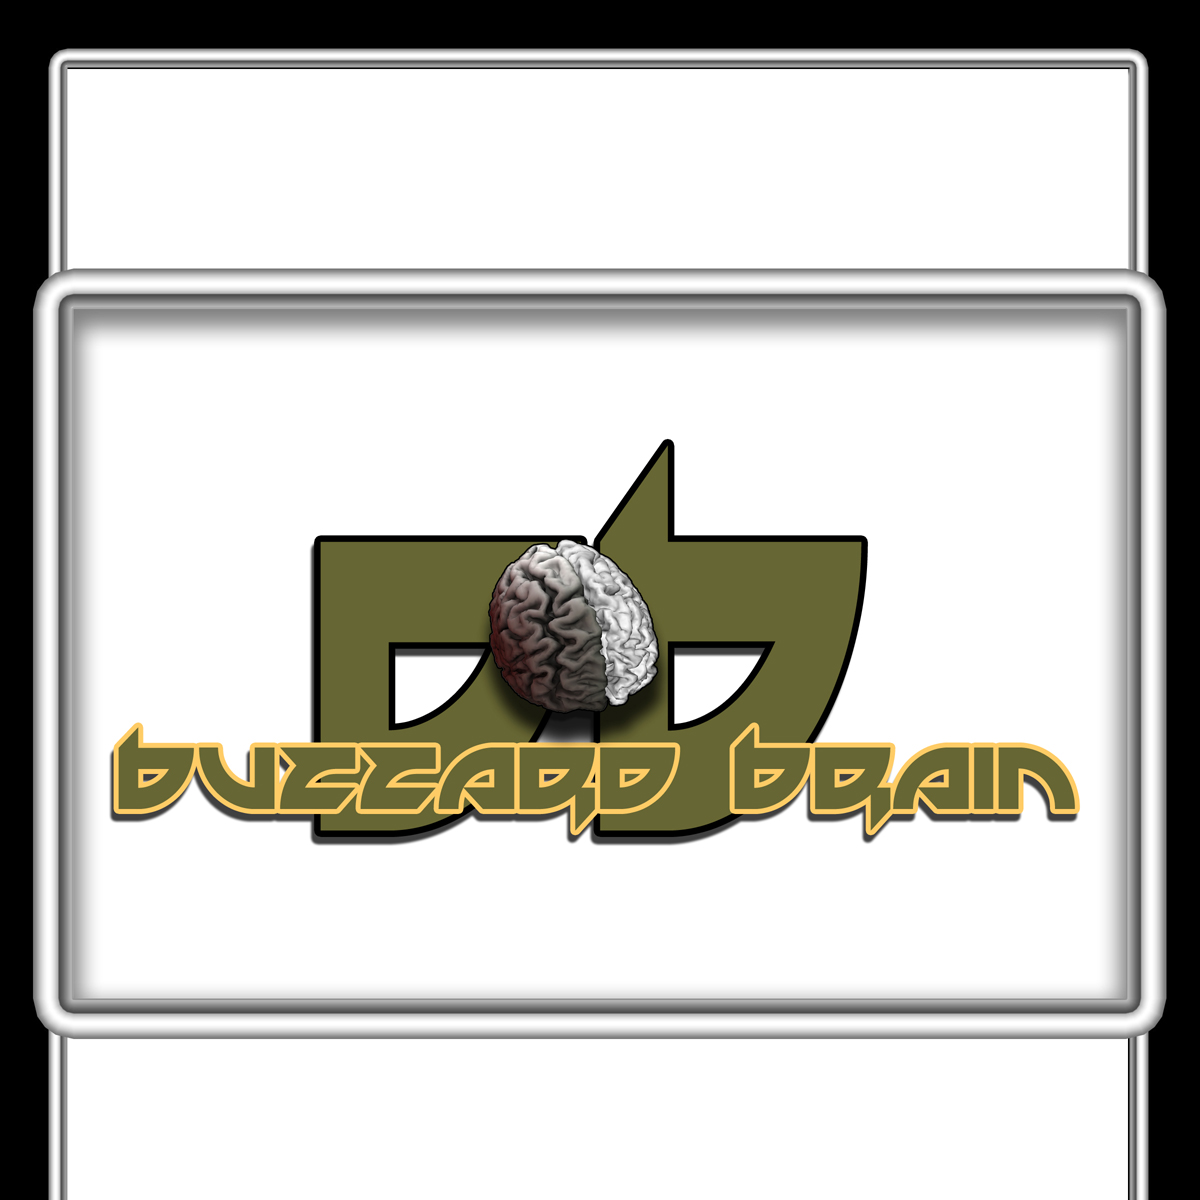 Logo Design by MITUCA ANDREI - Entry No. 21 in the Logo Design Contest Buzzard Brain Logo Design.